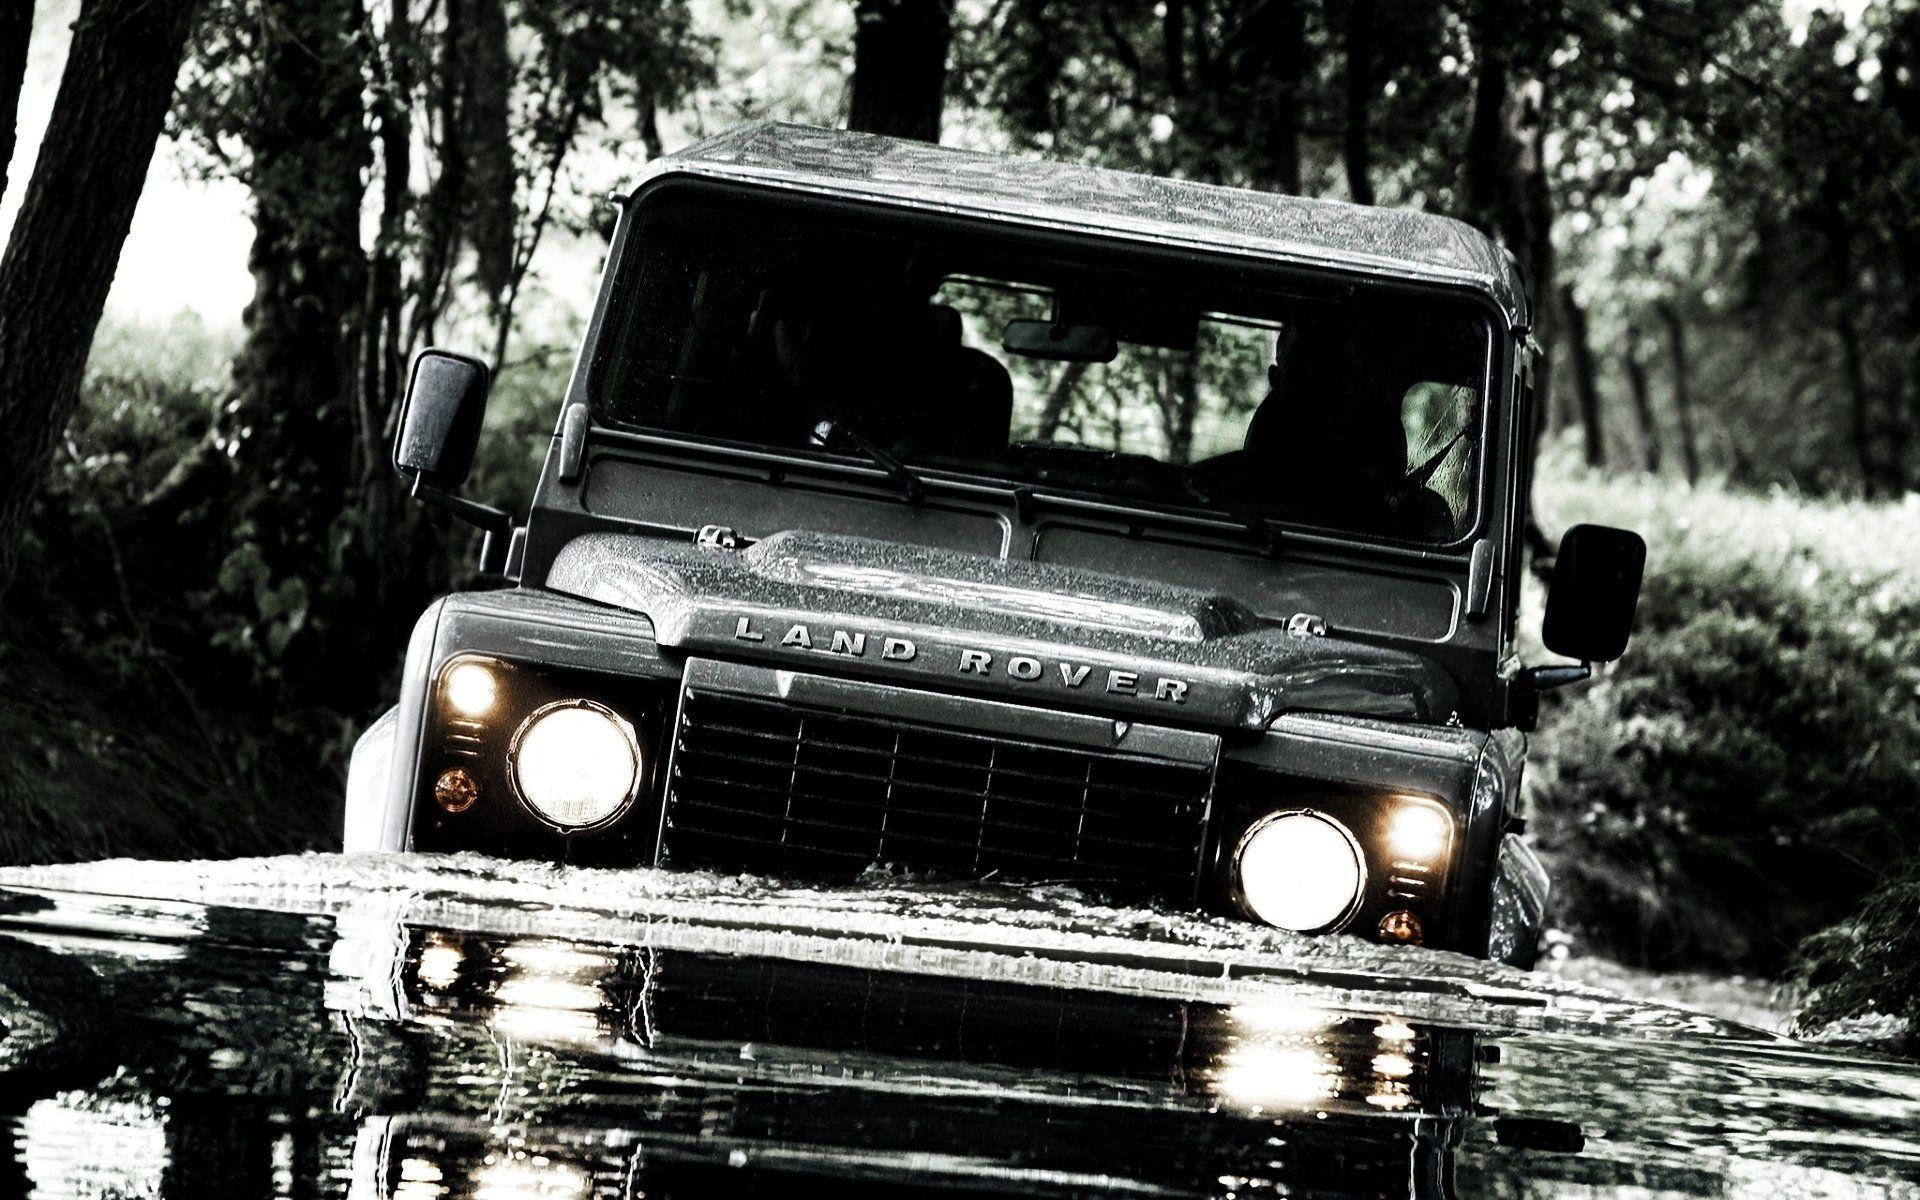 Land Rover Computer Wallpapers, Desktop Backgrounds | 1920x1200 ...